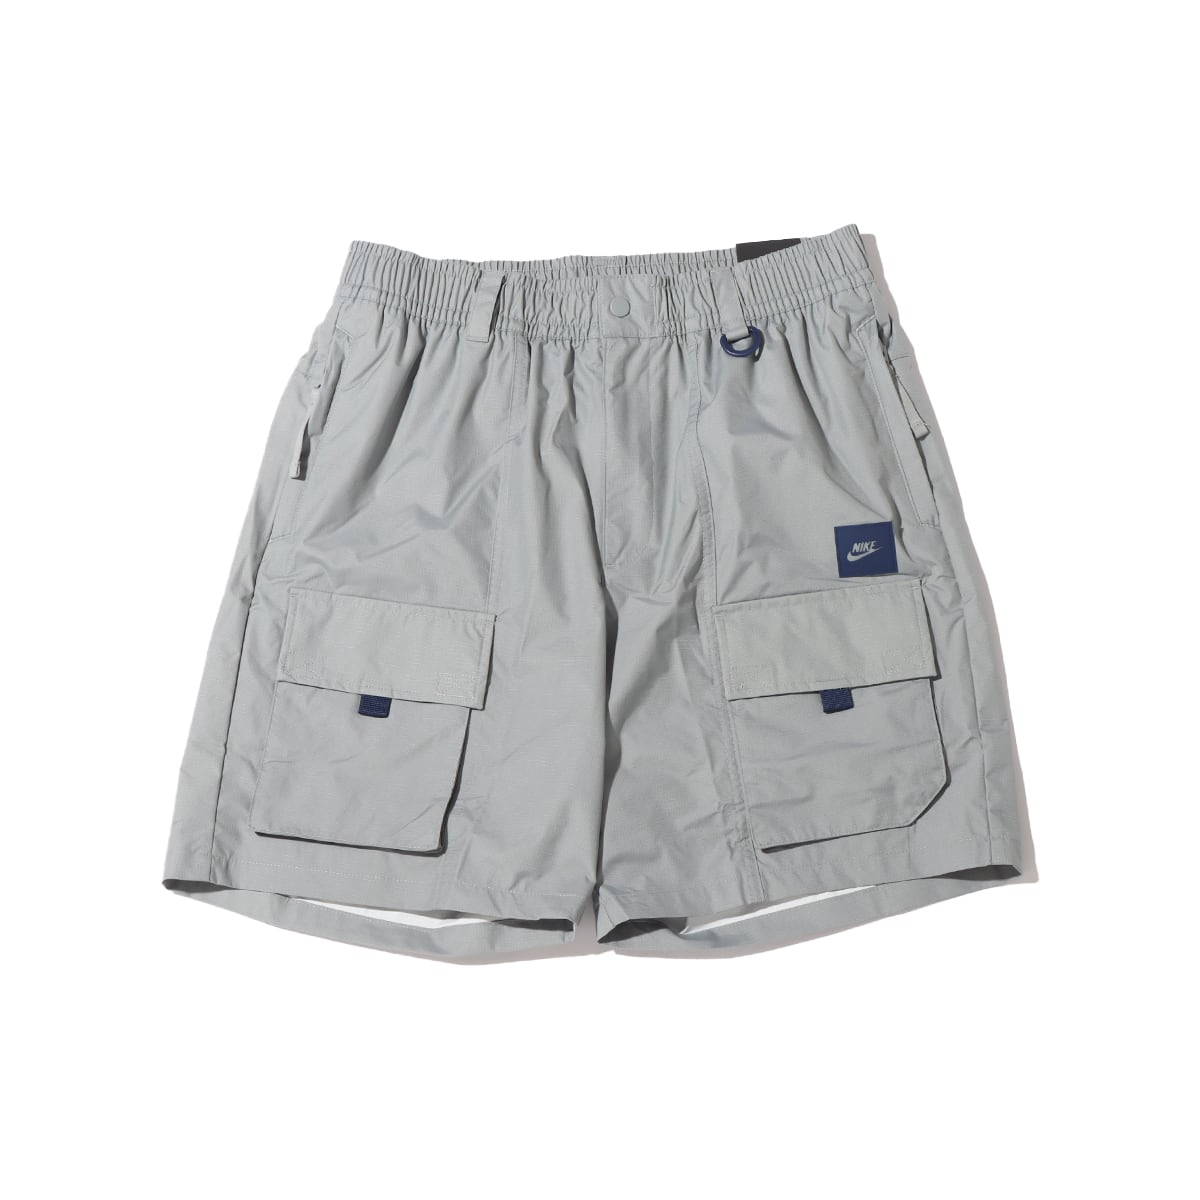 NIKE AS M NSW SHORT REPEL SHWR PARTICLE GREY/MIDNIGHT NAVY 21SU-I_photo_large